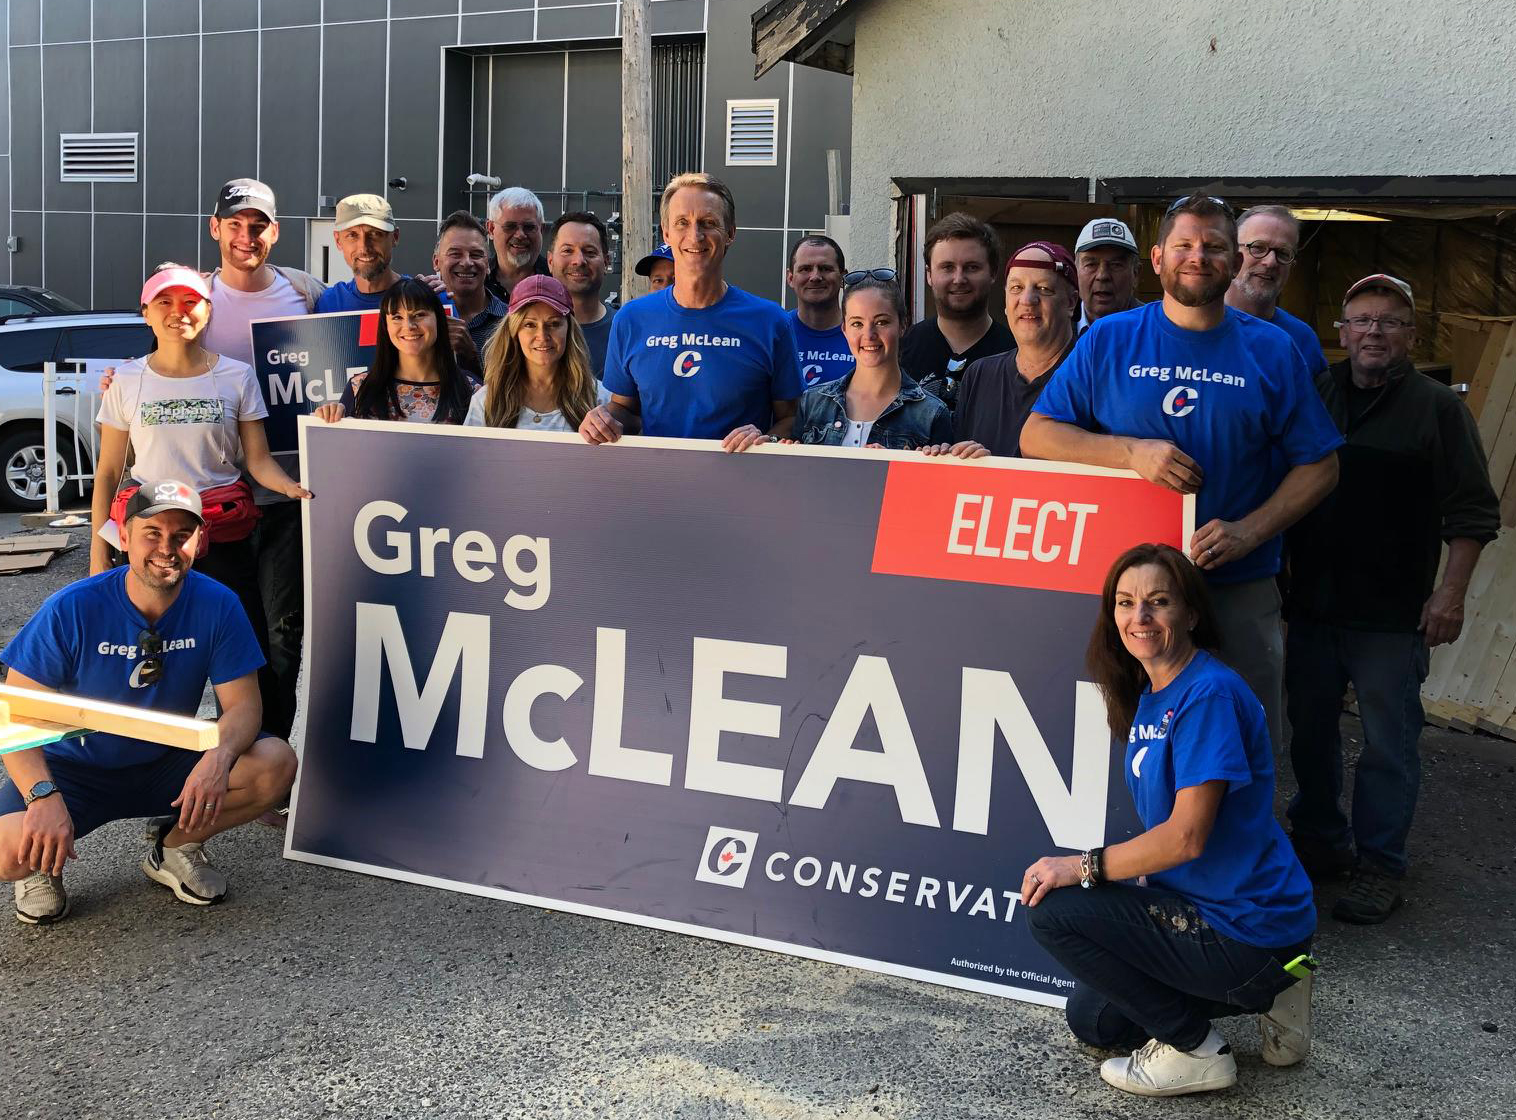 Just some of the volunteers who came out to our volunteer blitz on Saturday September 7. The next blitz is September 28 - mark your calendar and join us!